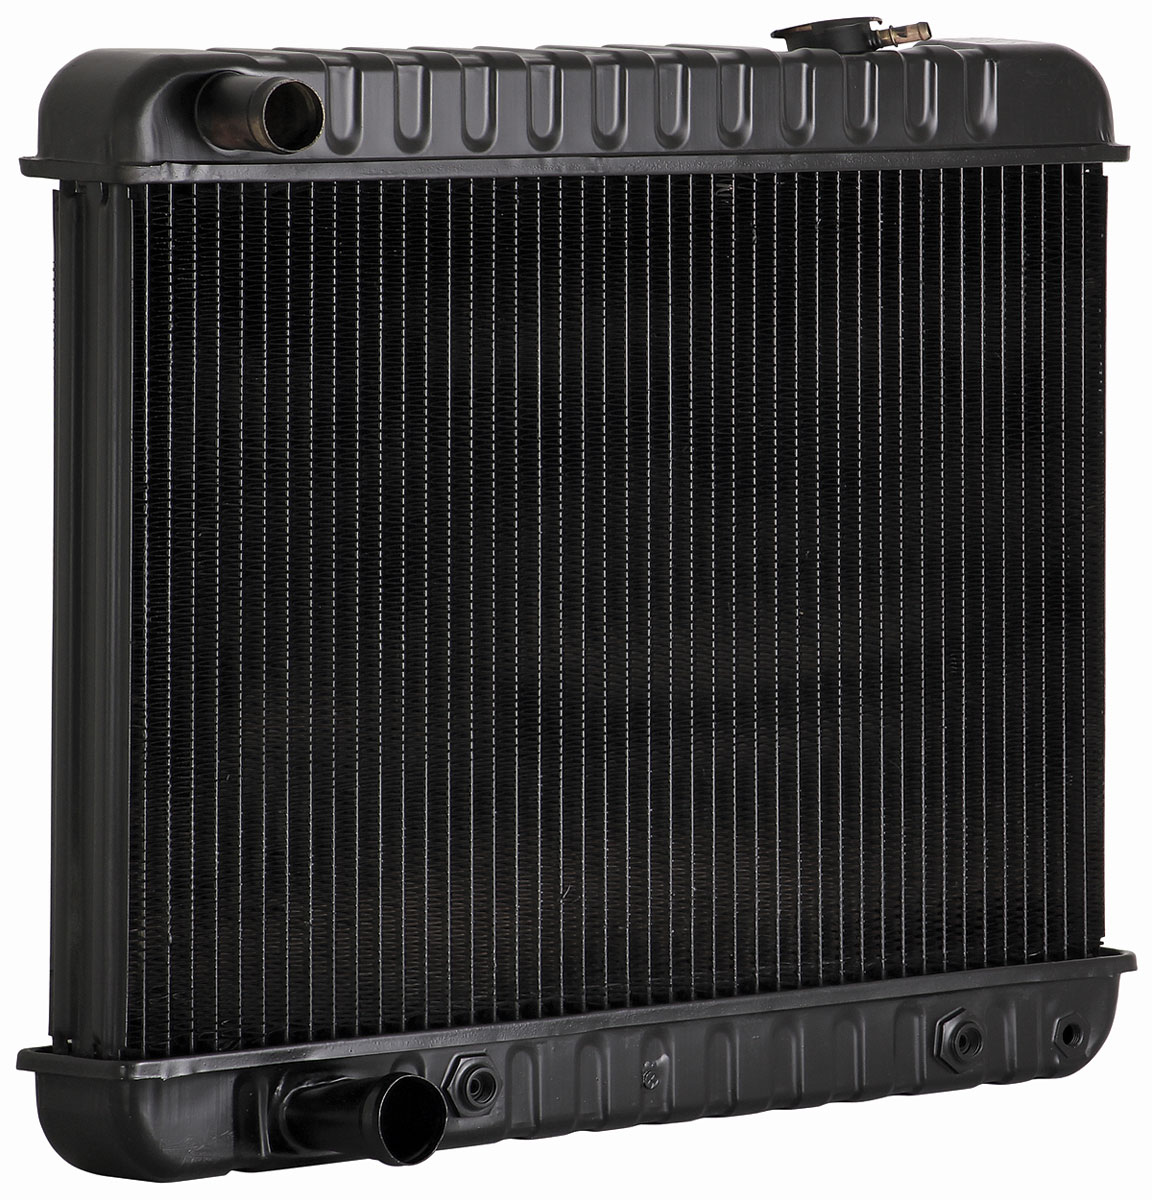 Radiator, 1961-62 Cadillac, V8, AT, w/o Air 3-Row, 17-3/8